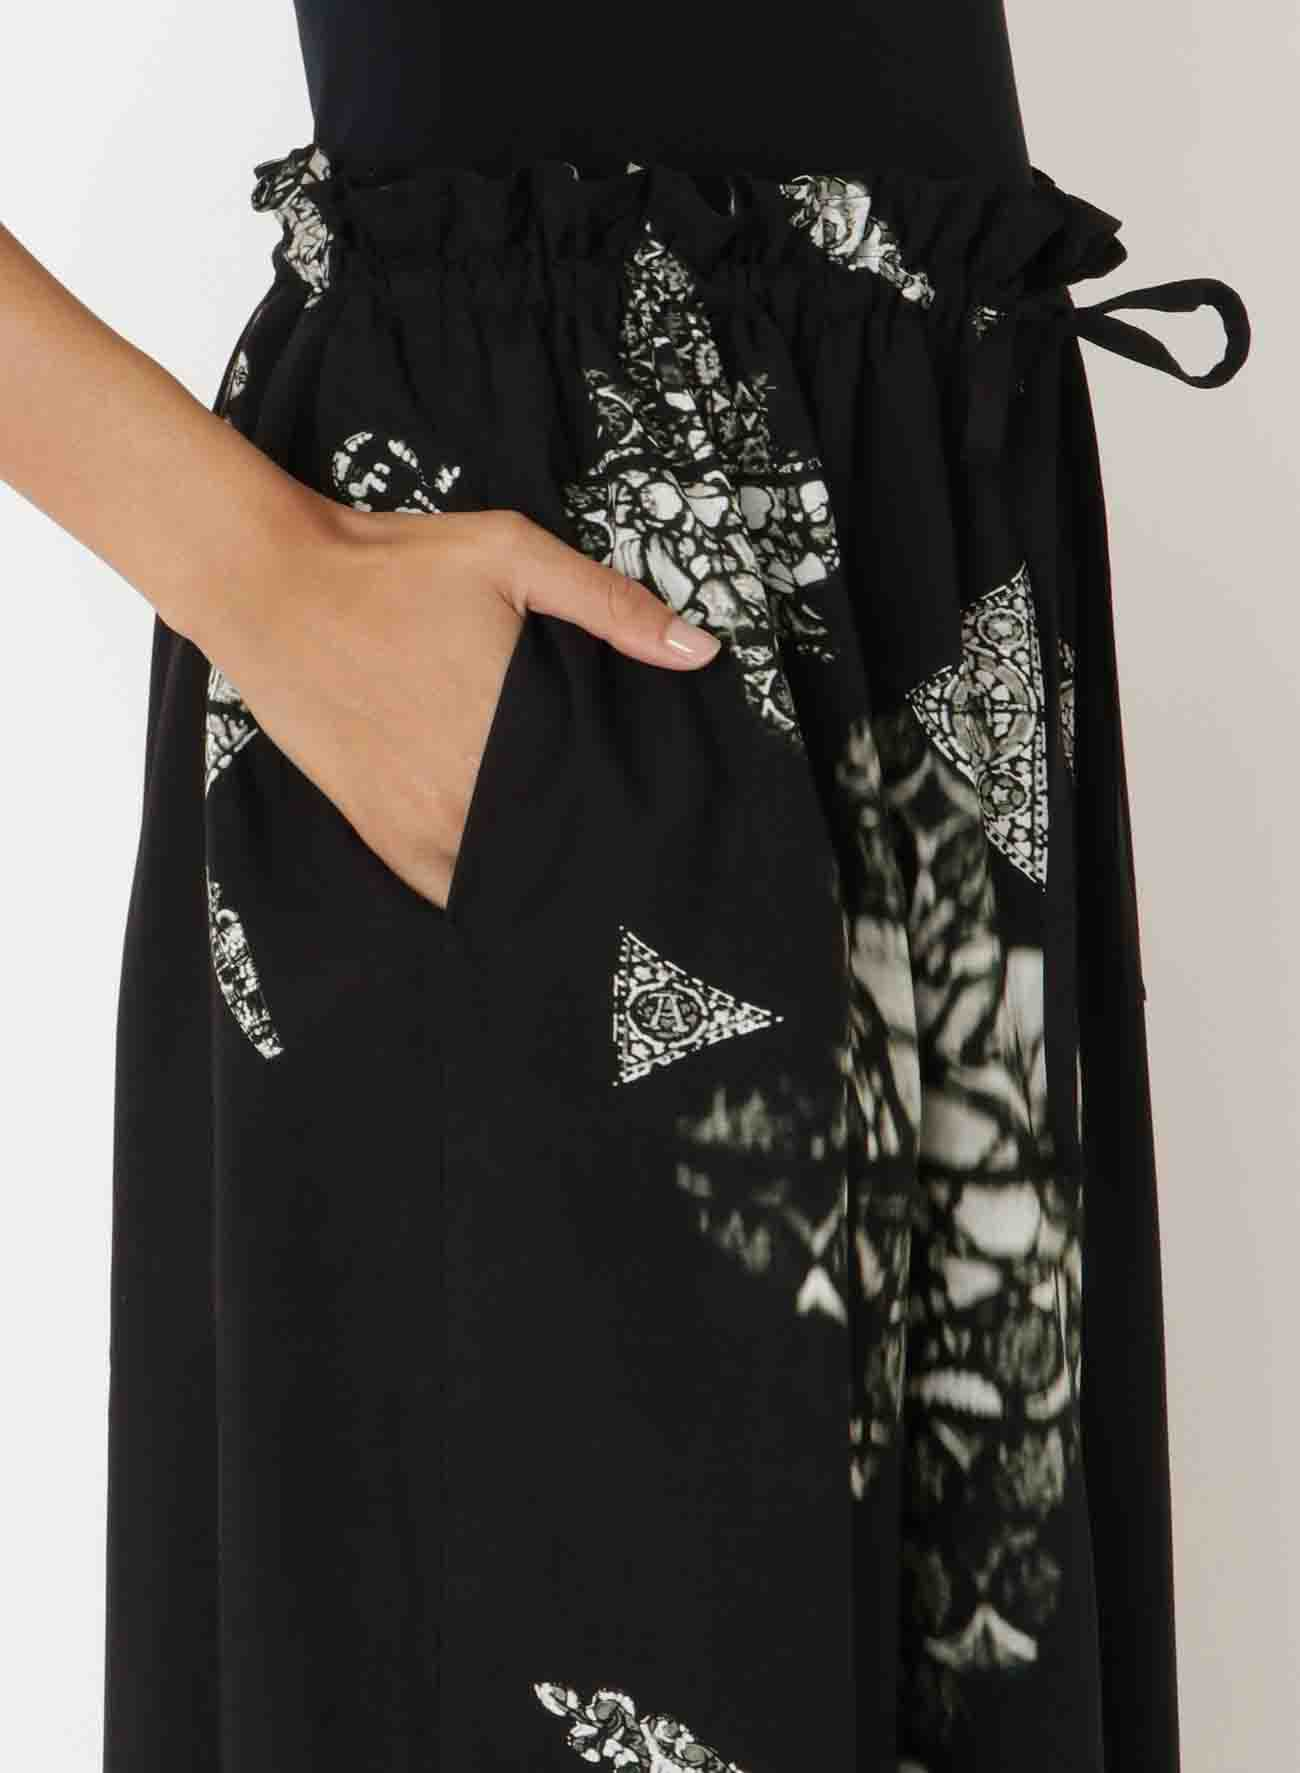 Ry/LAWN MONOCHROME STAINED GLASS SLIT GATHERED SKIRT